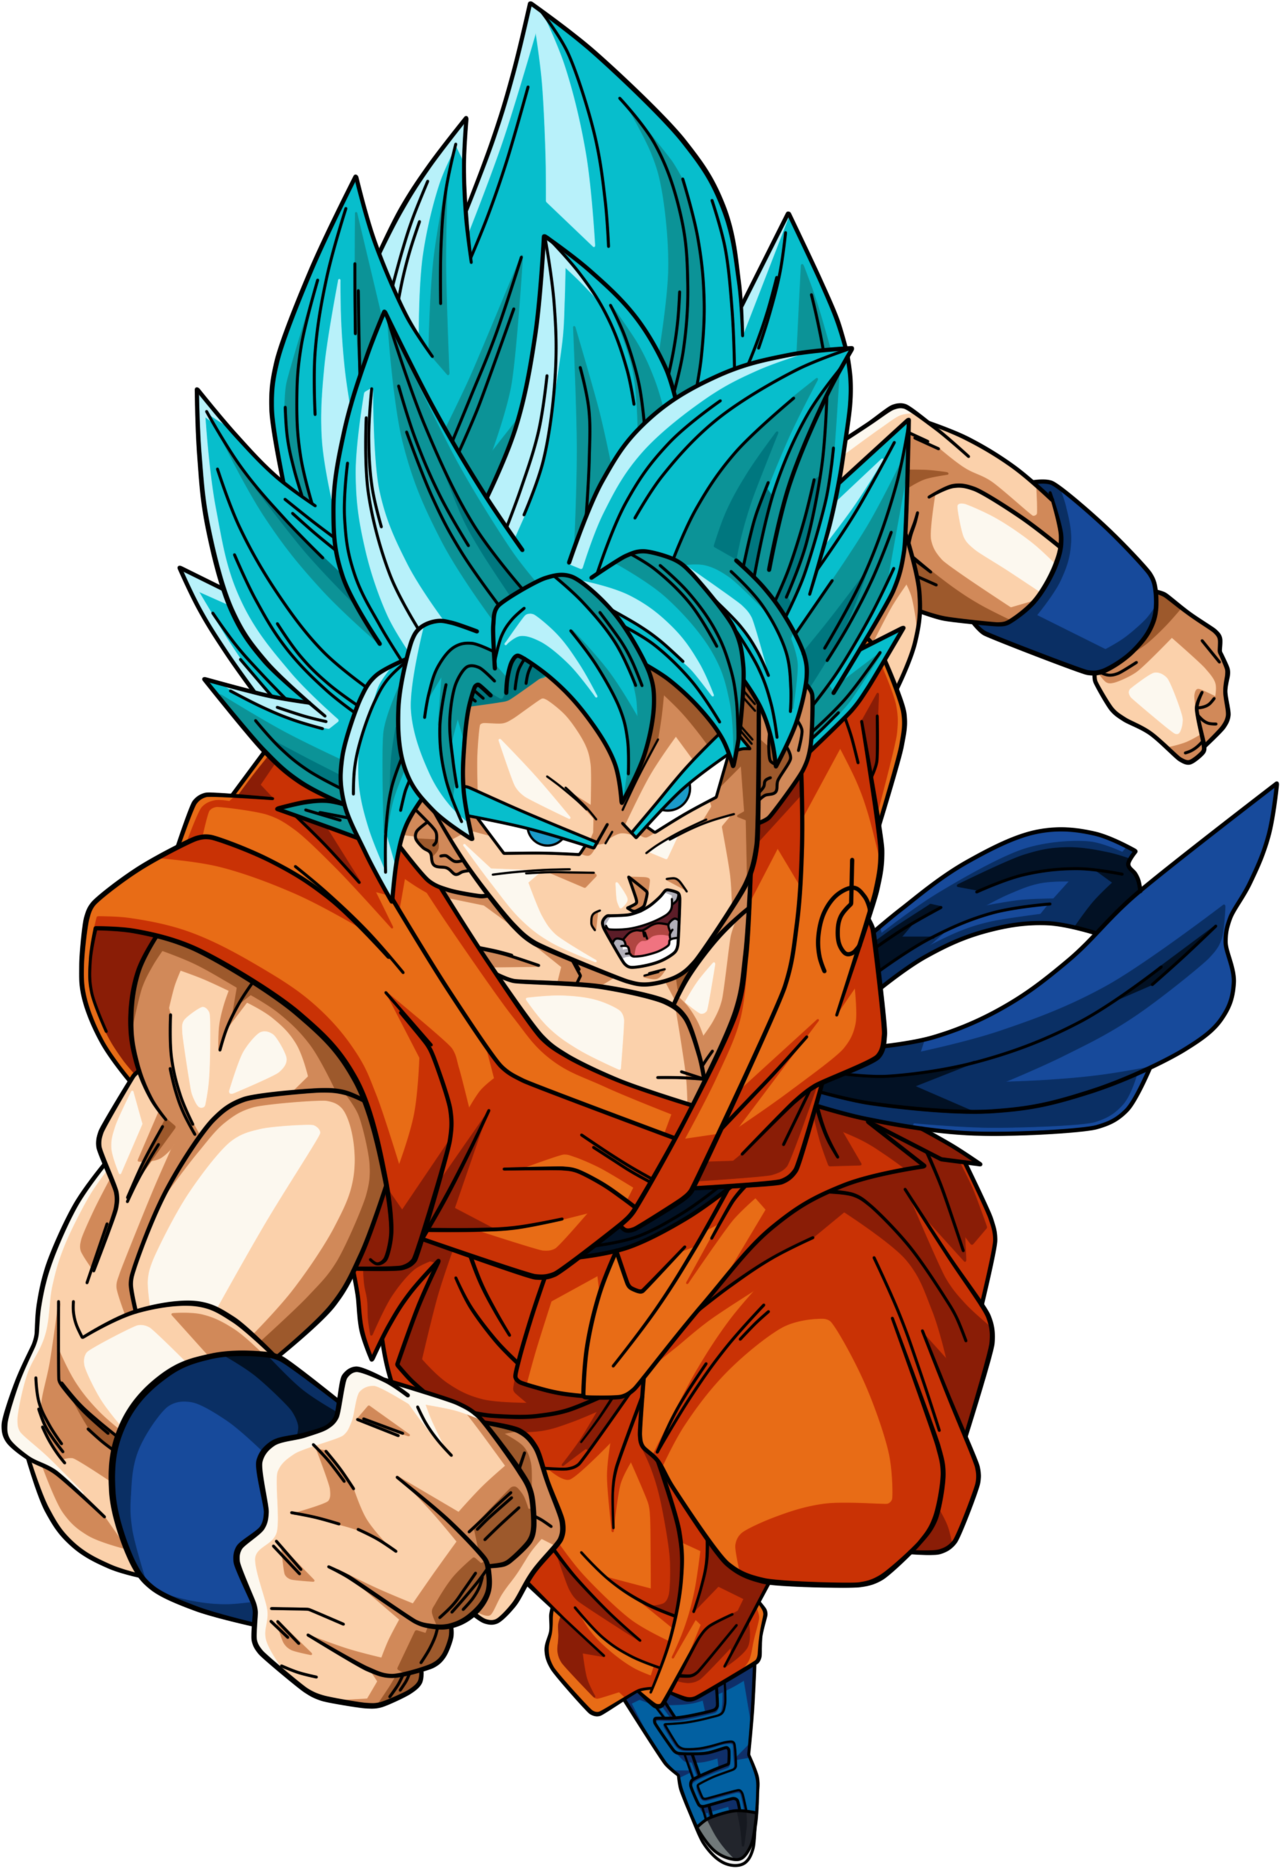 Super saiyan god goku wallpaper wallpapersafari - Goku 5 super saiyan ...